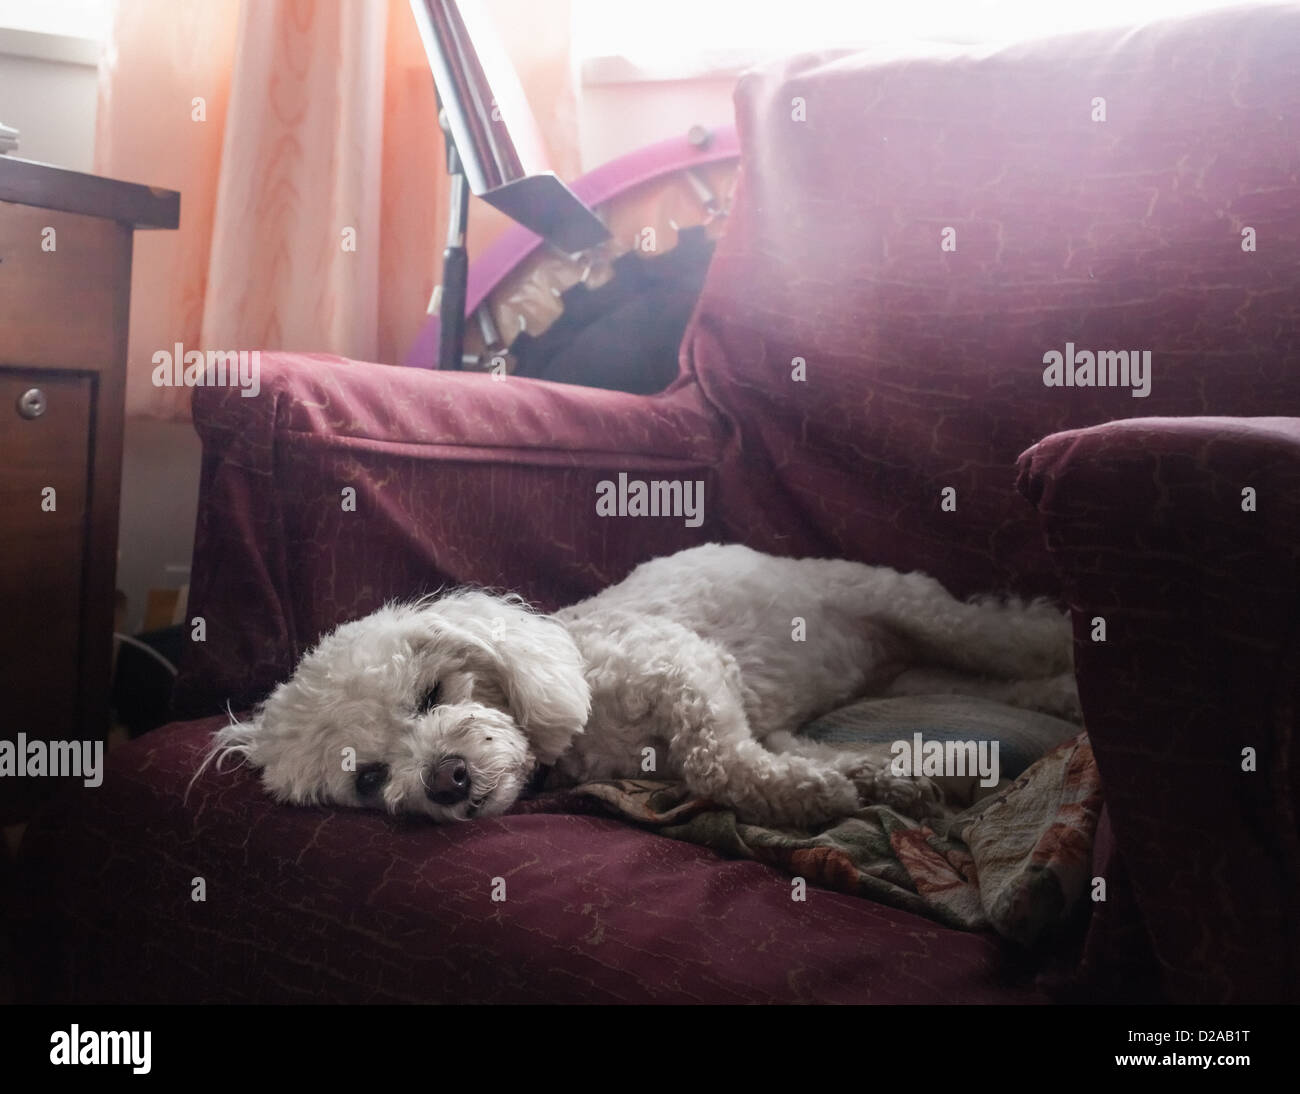 Dog sleeping in armchair - Stock Image